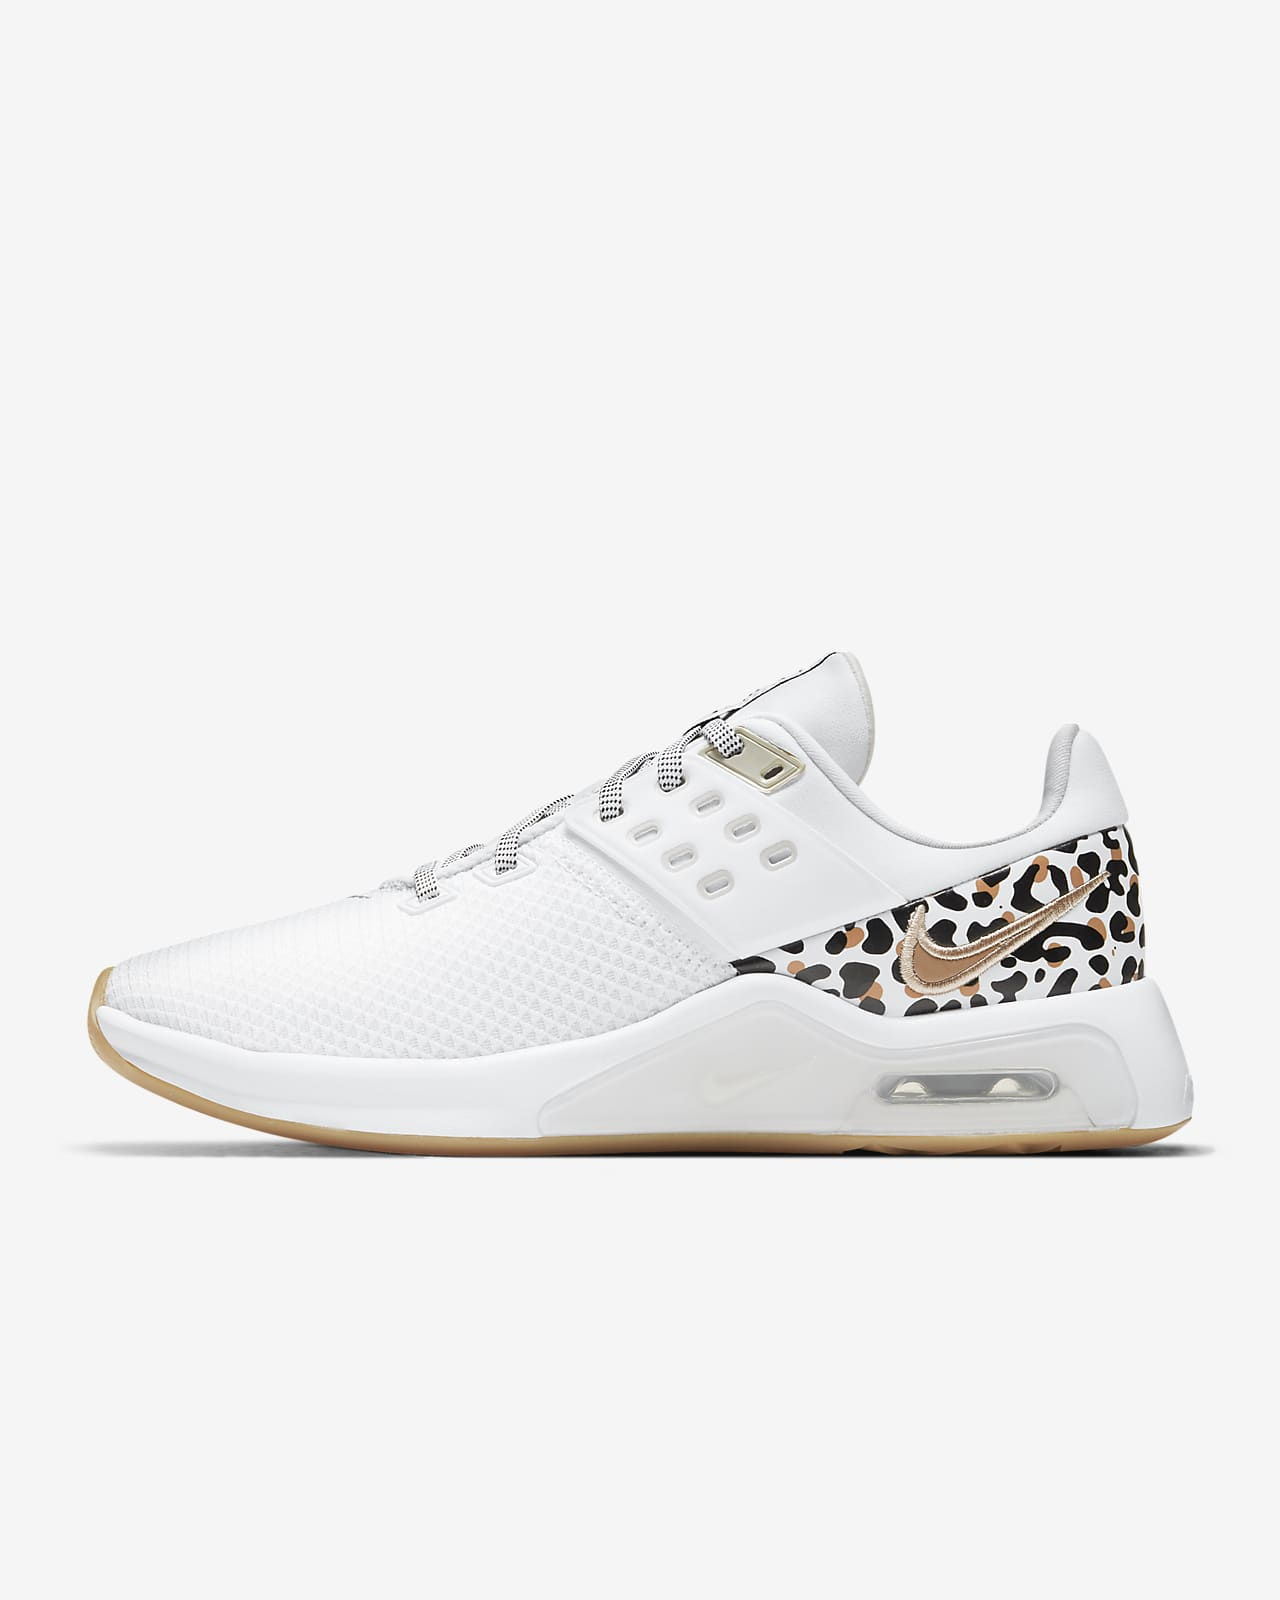 Nike Air Max Bella TR 4 Premium Women's Training Shoe